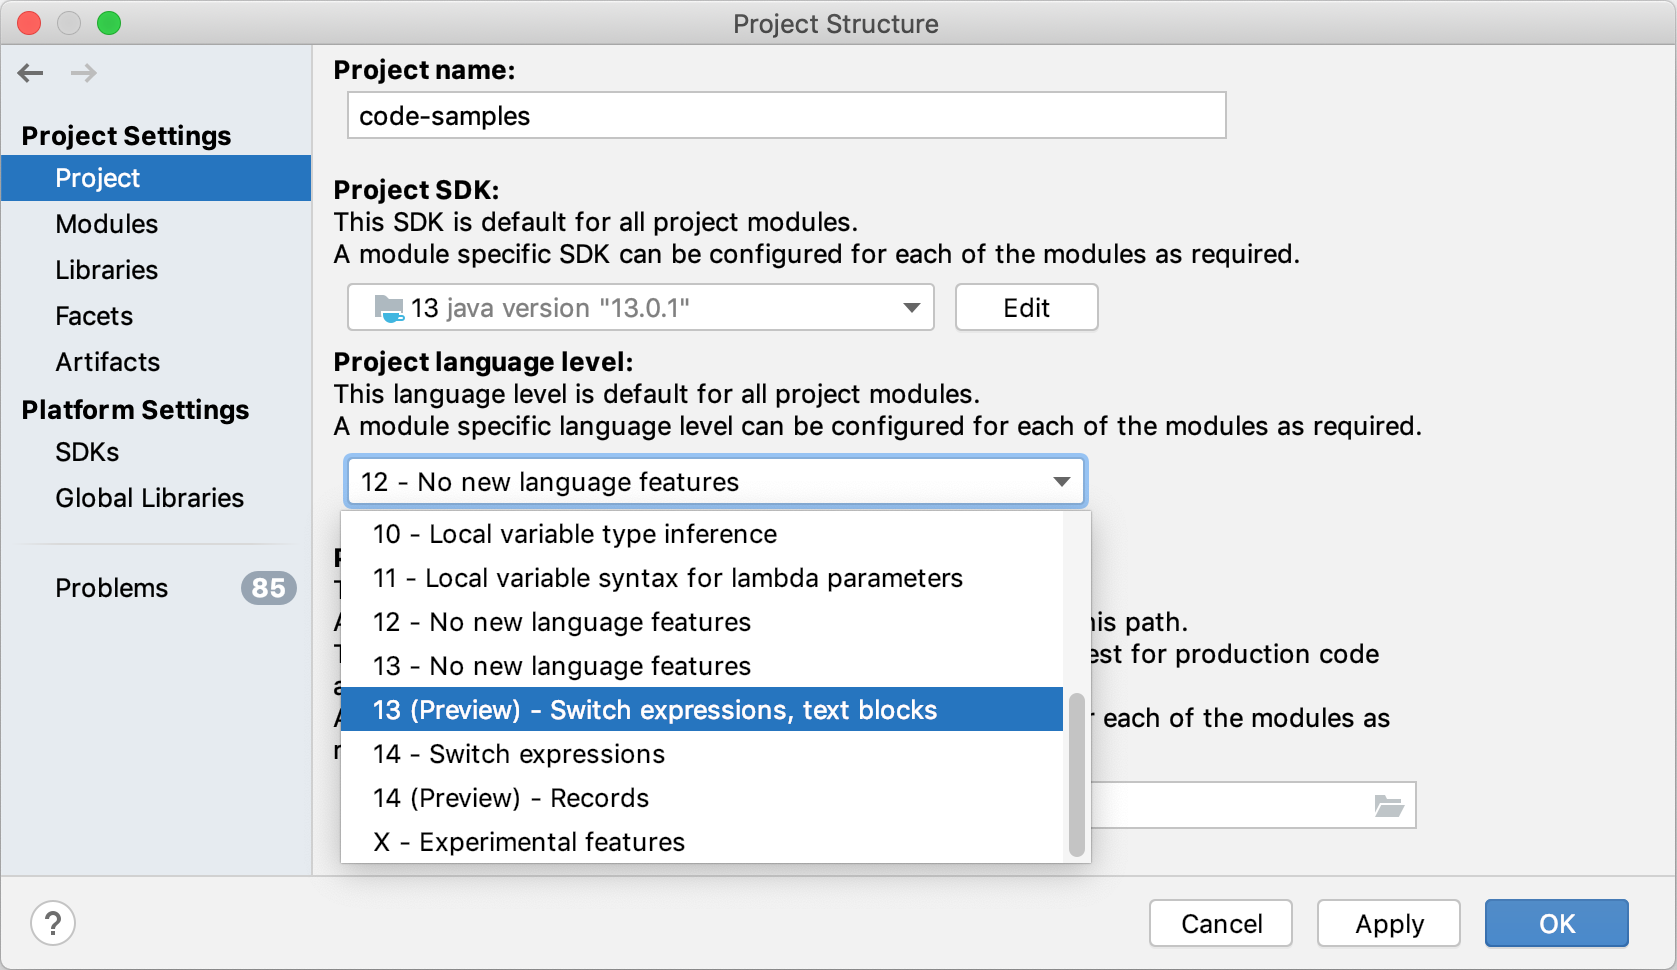 selecting preview features in Language level